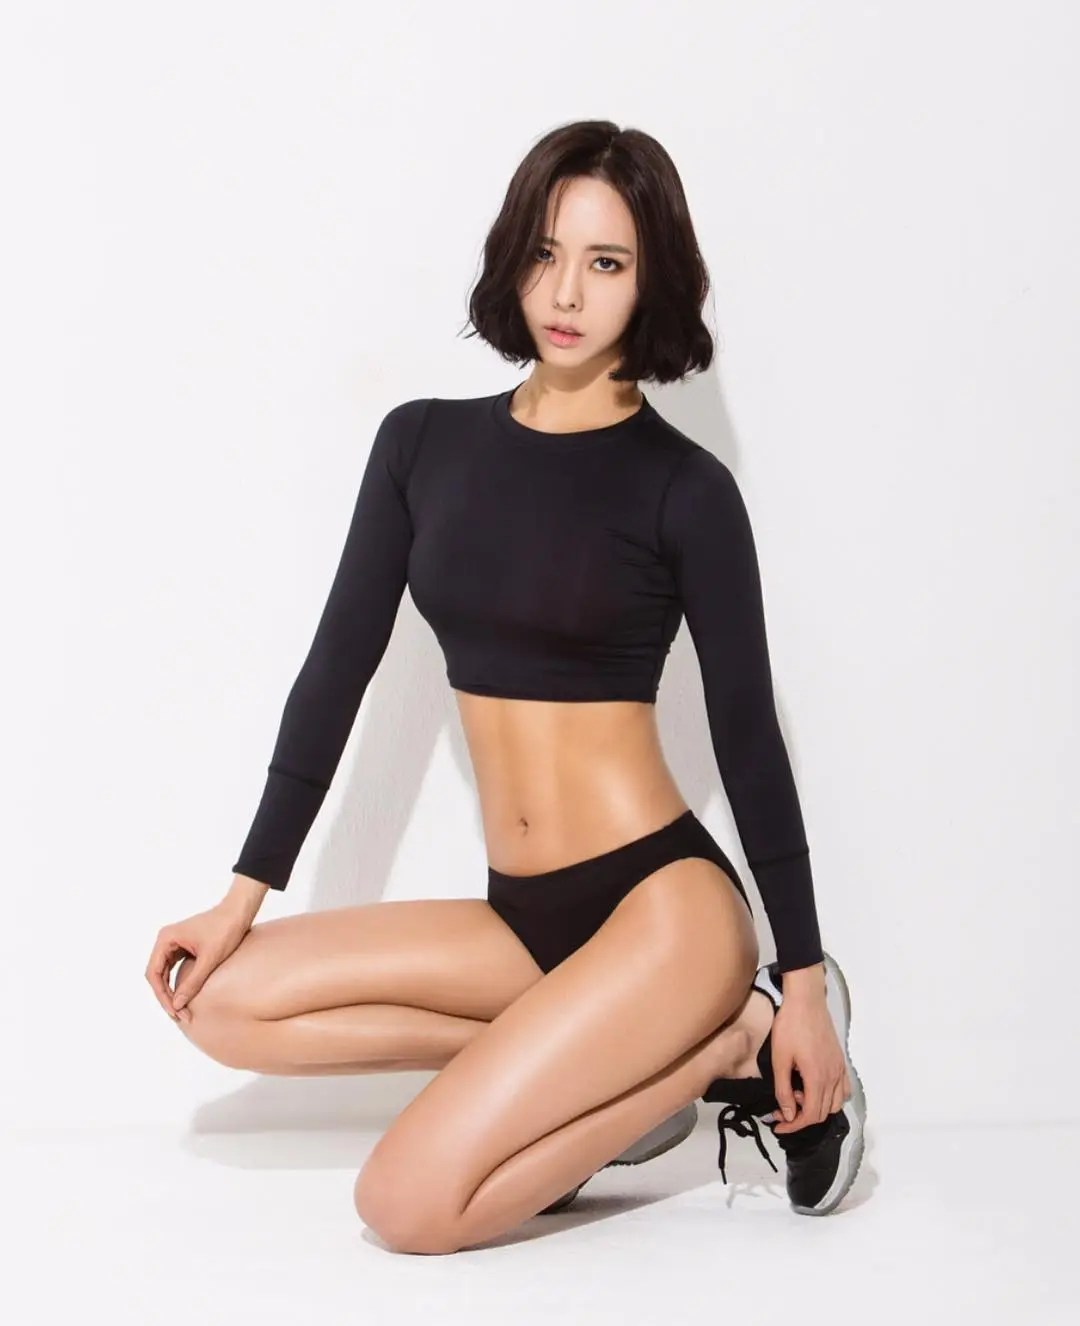 Leeyeon - Fitness Model